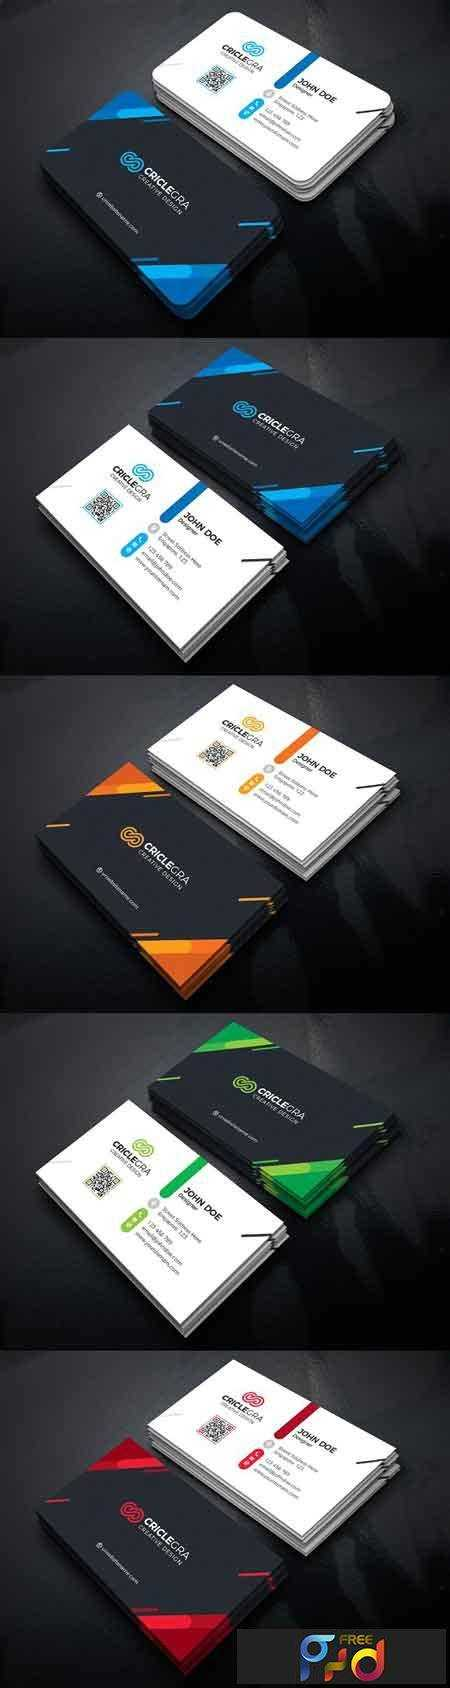 1705229 creative business card 1827632 free psd download free